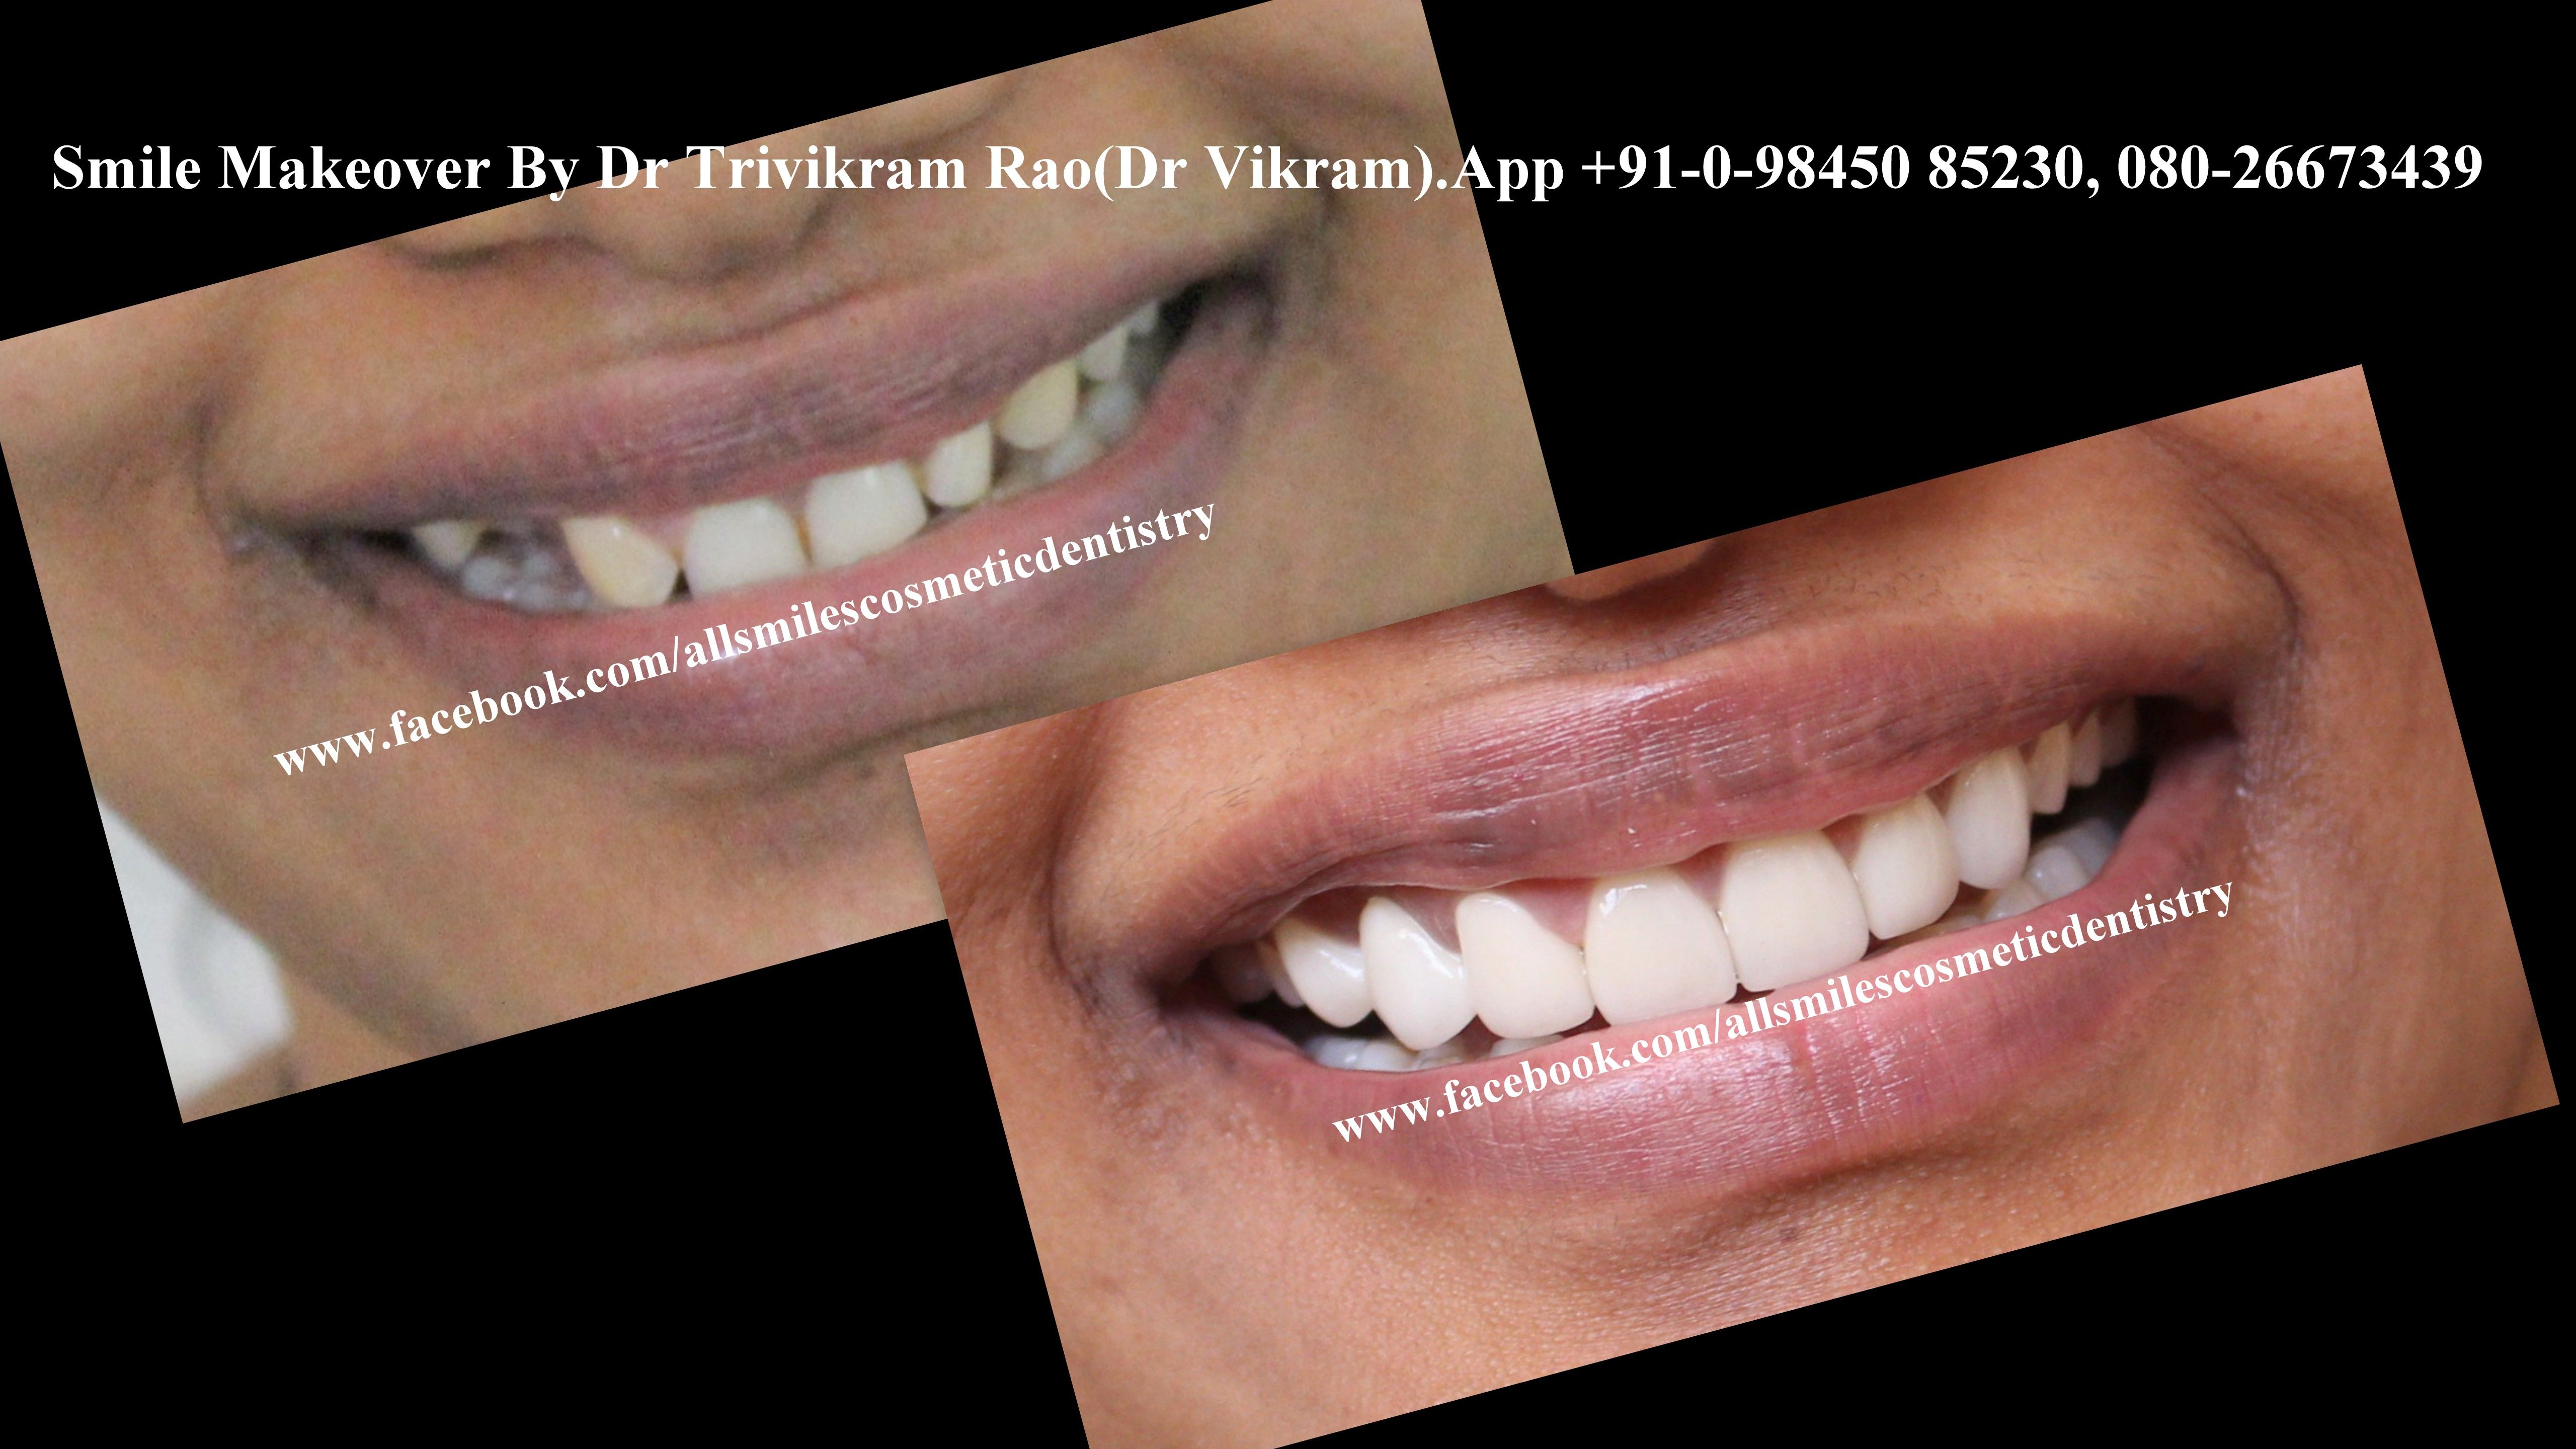 Smile makeovers in Bangalore by Cosmetic Dentist Dr Trivikram(Dr Vikram). Read more at http://www.allsmilesdc.org/cosmetic-dentistry PH +91-0- 98450 85230.080-26673439